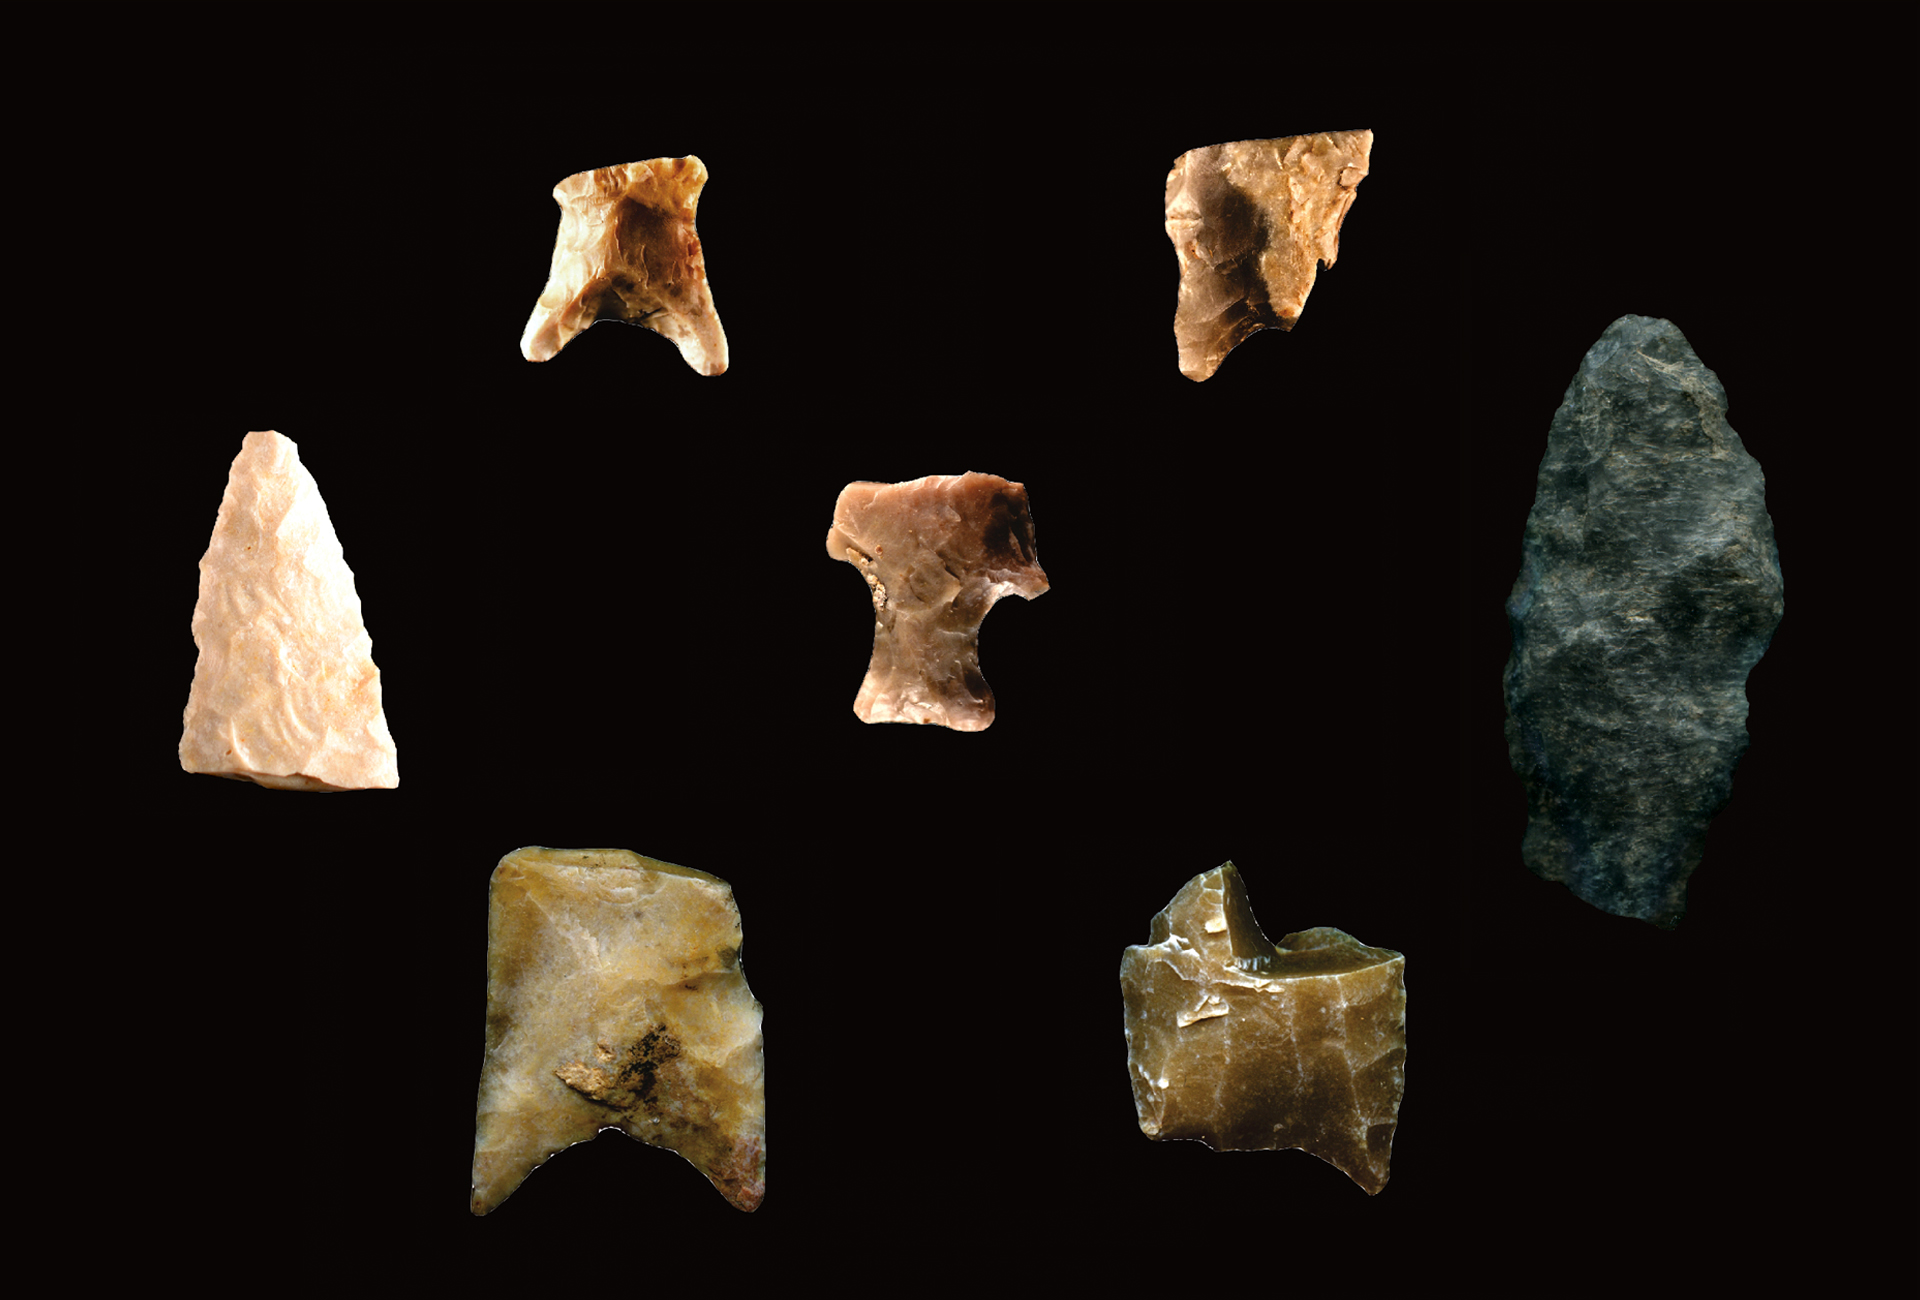 various pieces of arrowheads made of stone on a black background with a scale of 0-2cm at the bottom